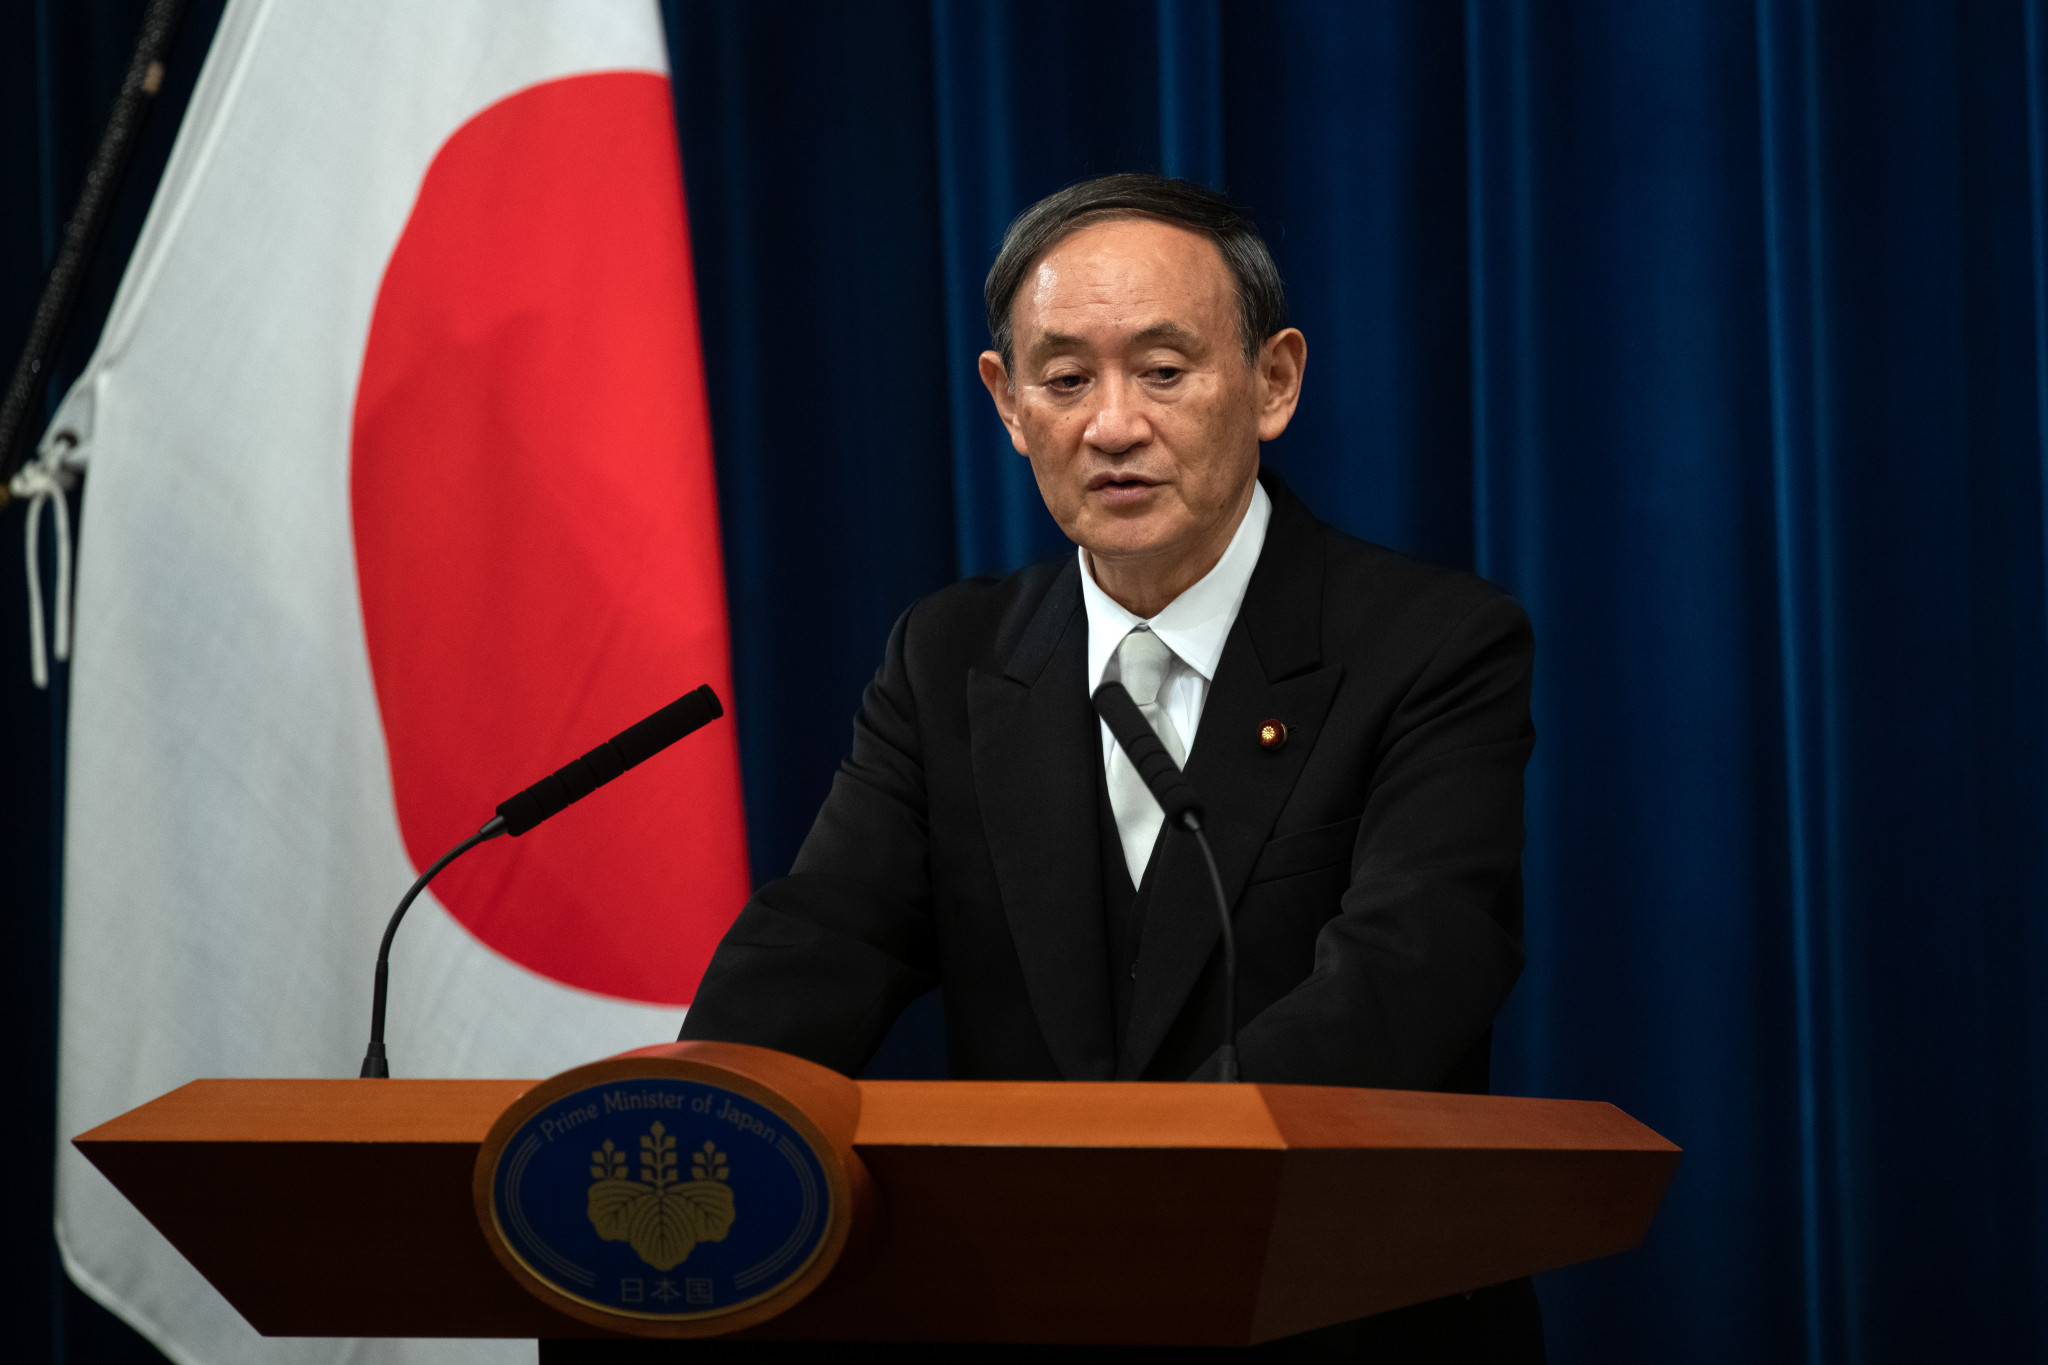 South Korean spy chief proposes summit between world leaders during Tokyo 2020 Olympics